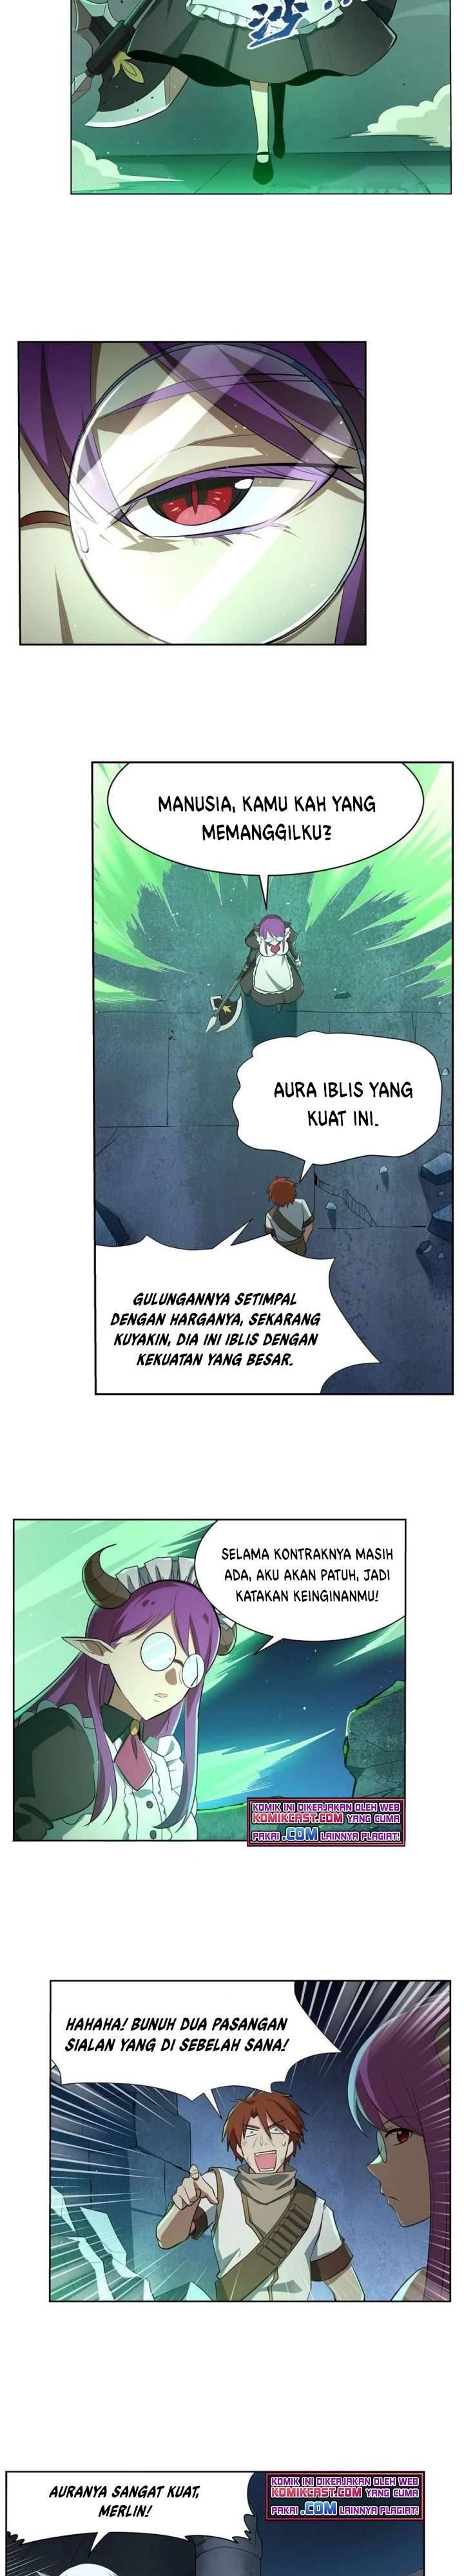 The Demon King Who Lost His Job Chapter 214